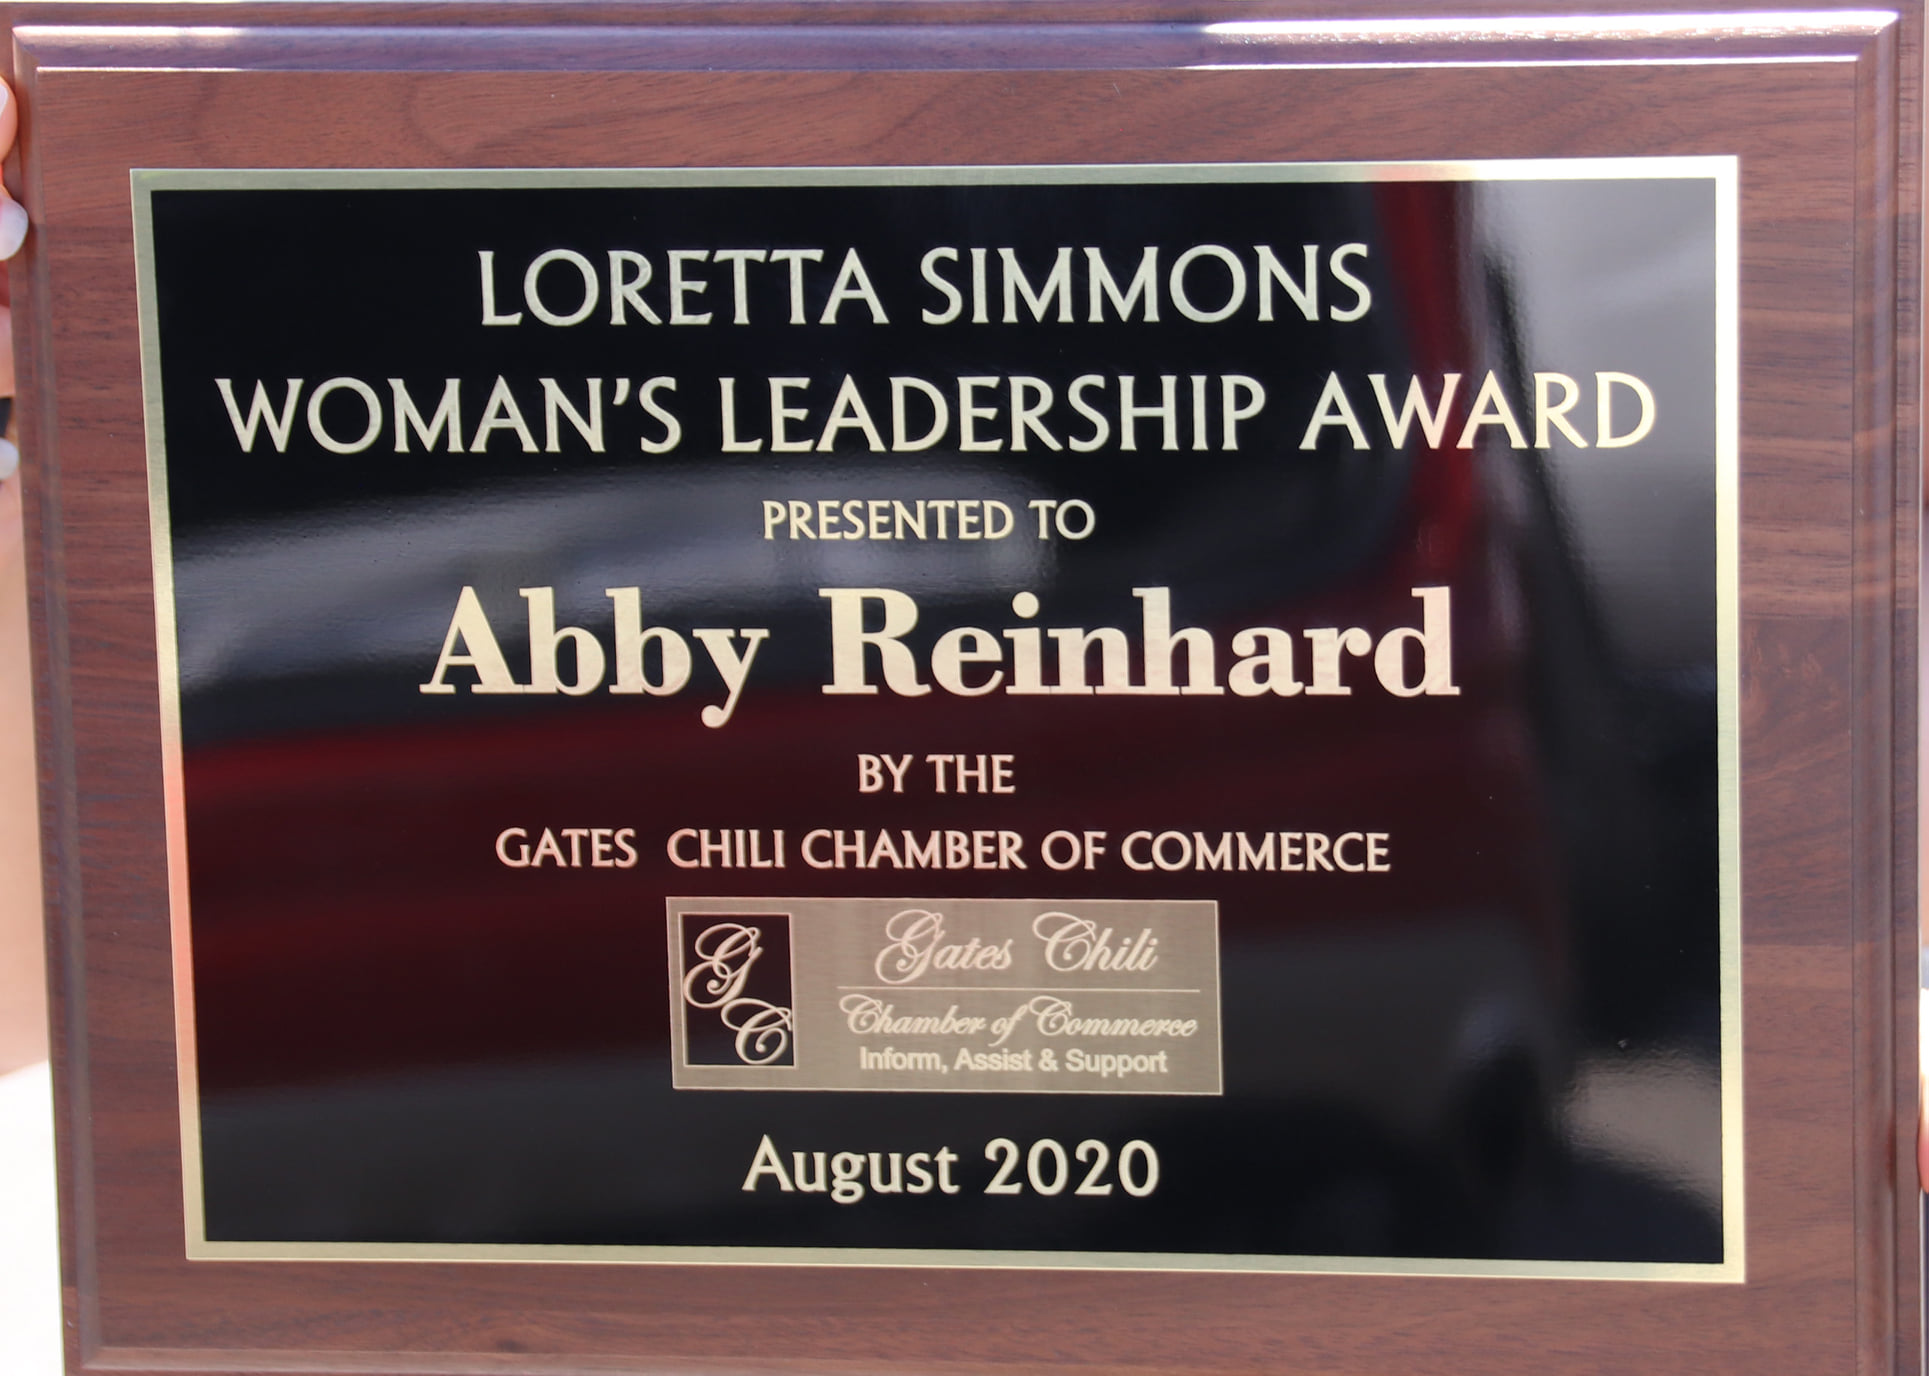 The 2020 Loretta Simmons Women's Leadership Award from the Gates-Chili Chamber of Commerce